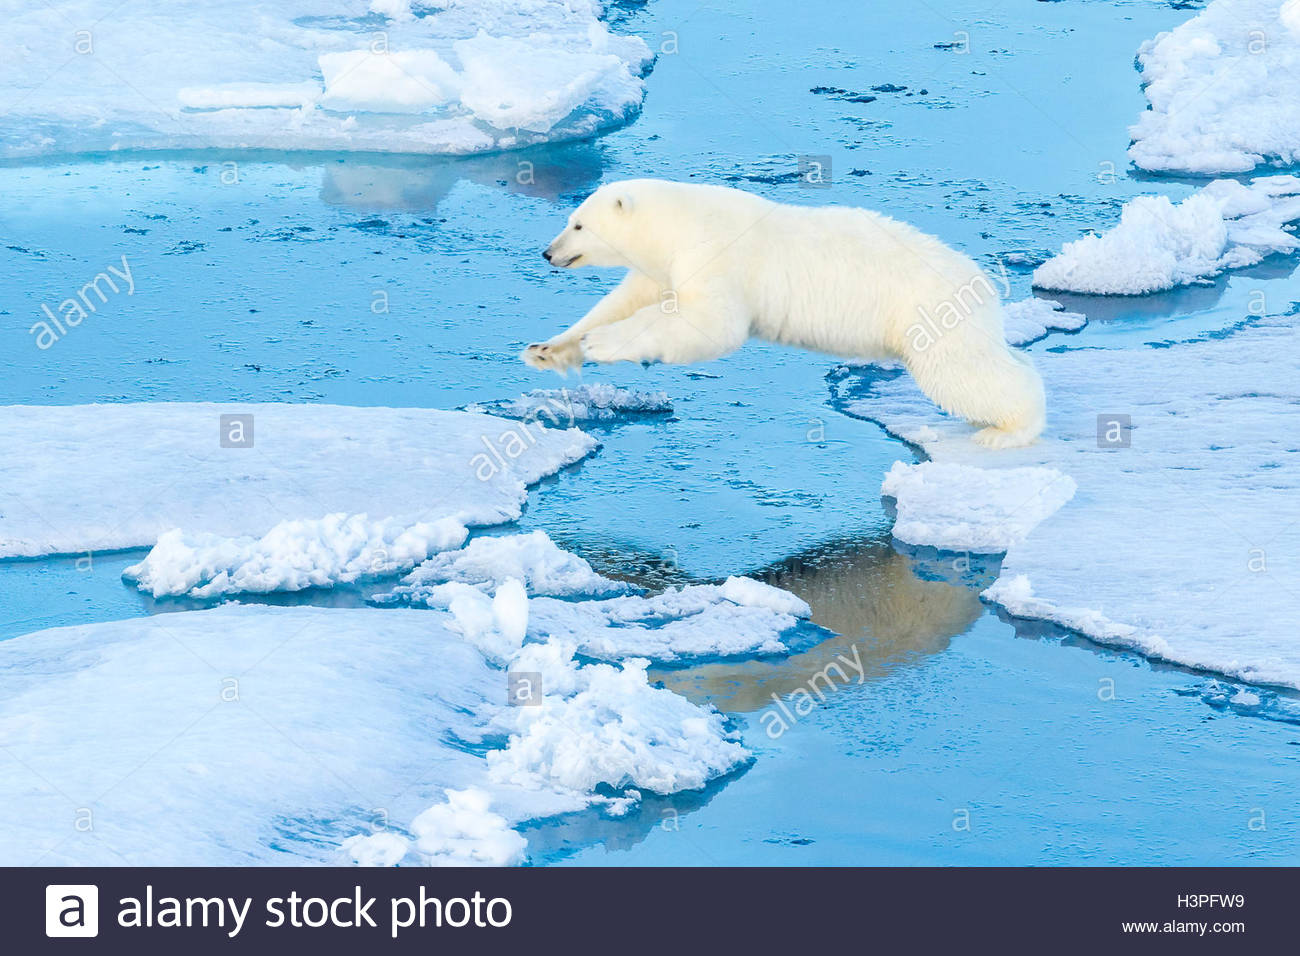 A polar bear jumps from ice floe to ice floe, Polar Bear Pass in Lancaster Sound. - Stock Image